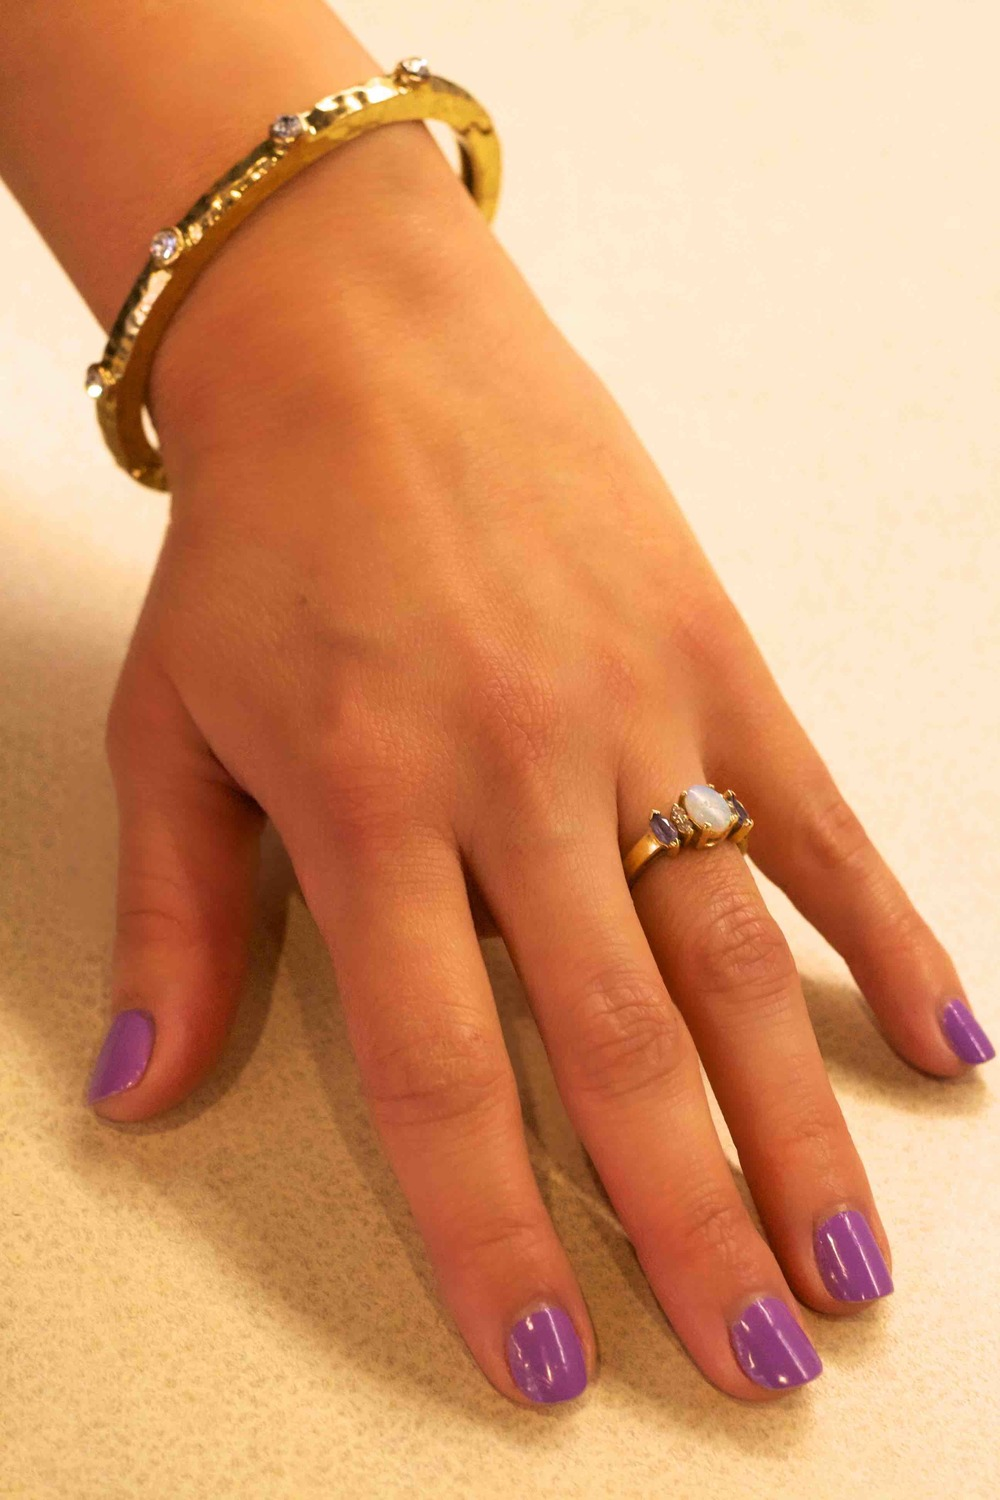 Nilsa Reyna Left Hand Jewelry Resized.jpg